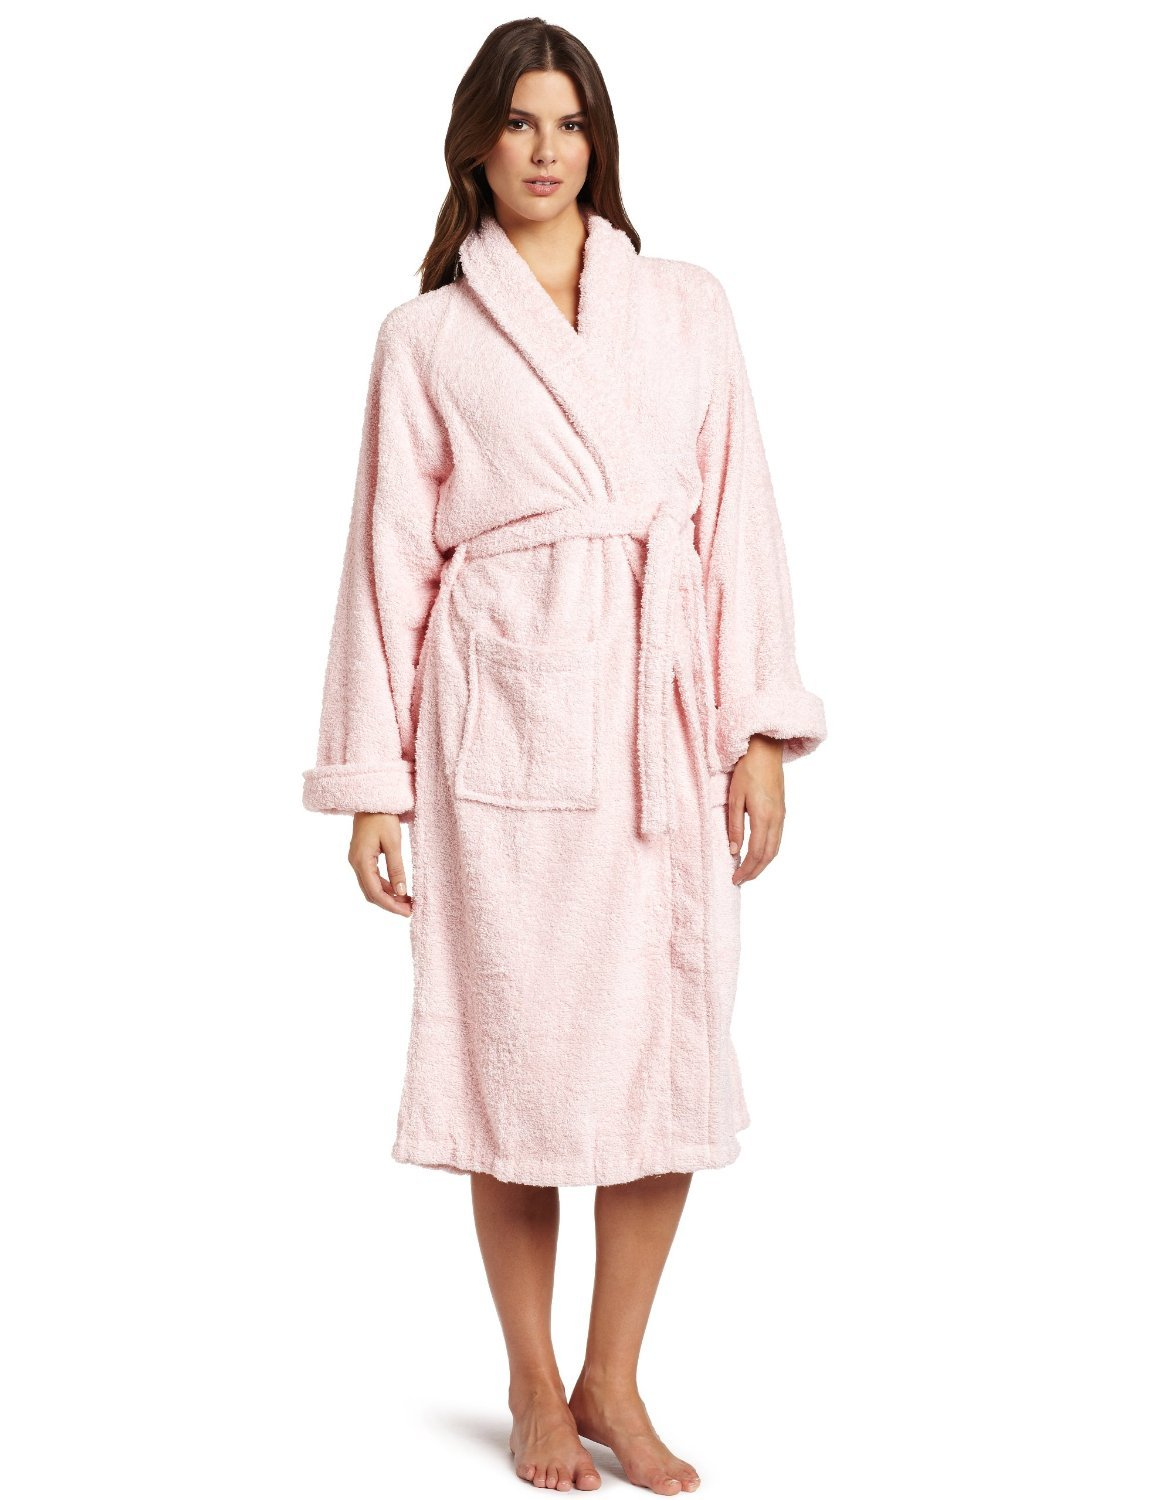 Superior Hotel & Spa Robe, 100% Premium Long-Staple Combed Cotton Unisex Bath Robe for Women and Men - XL, Pink